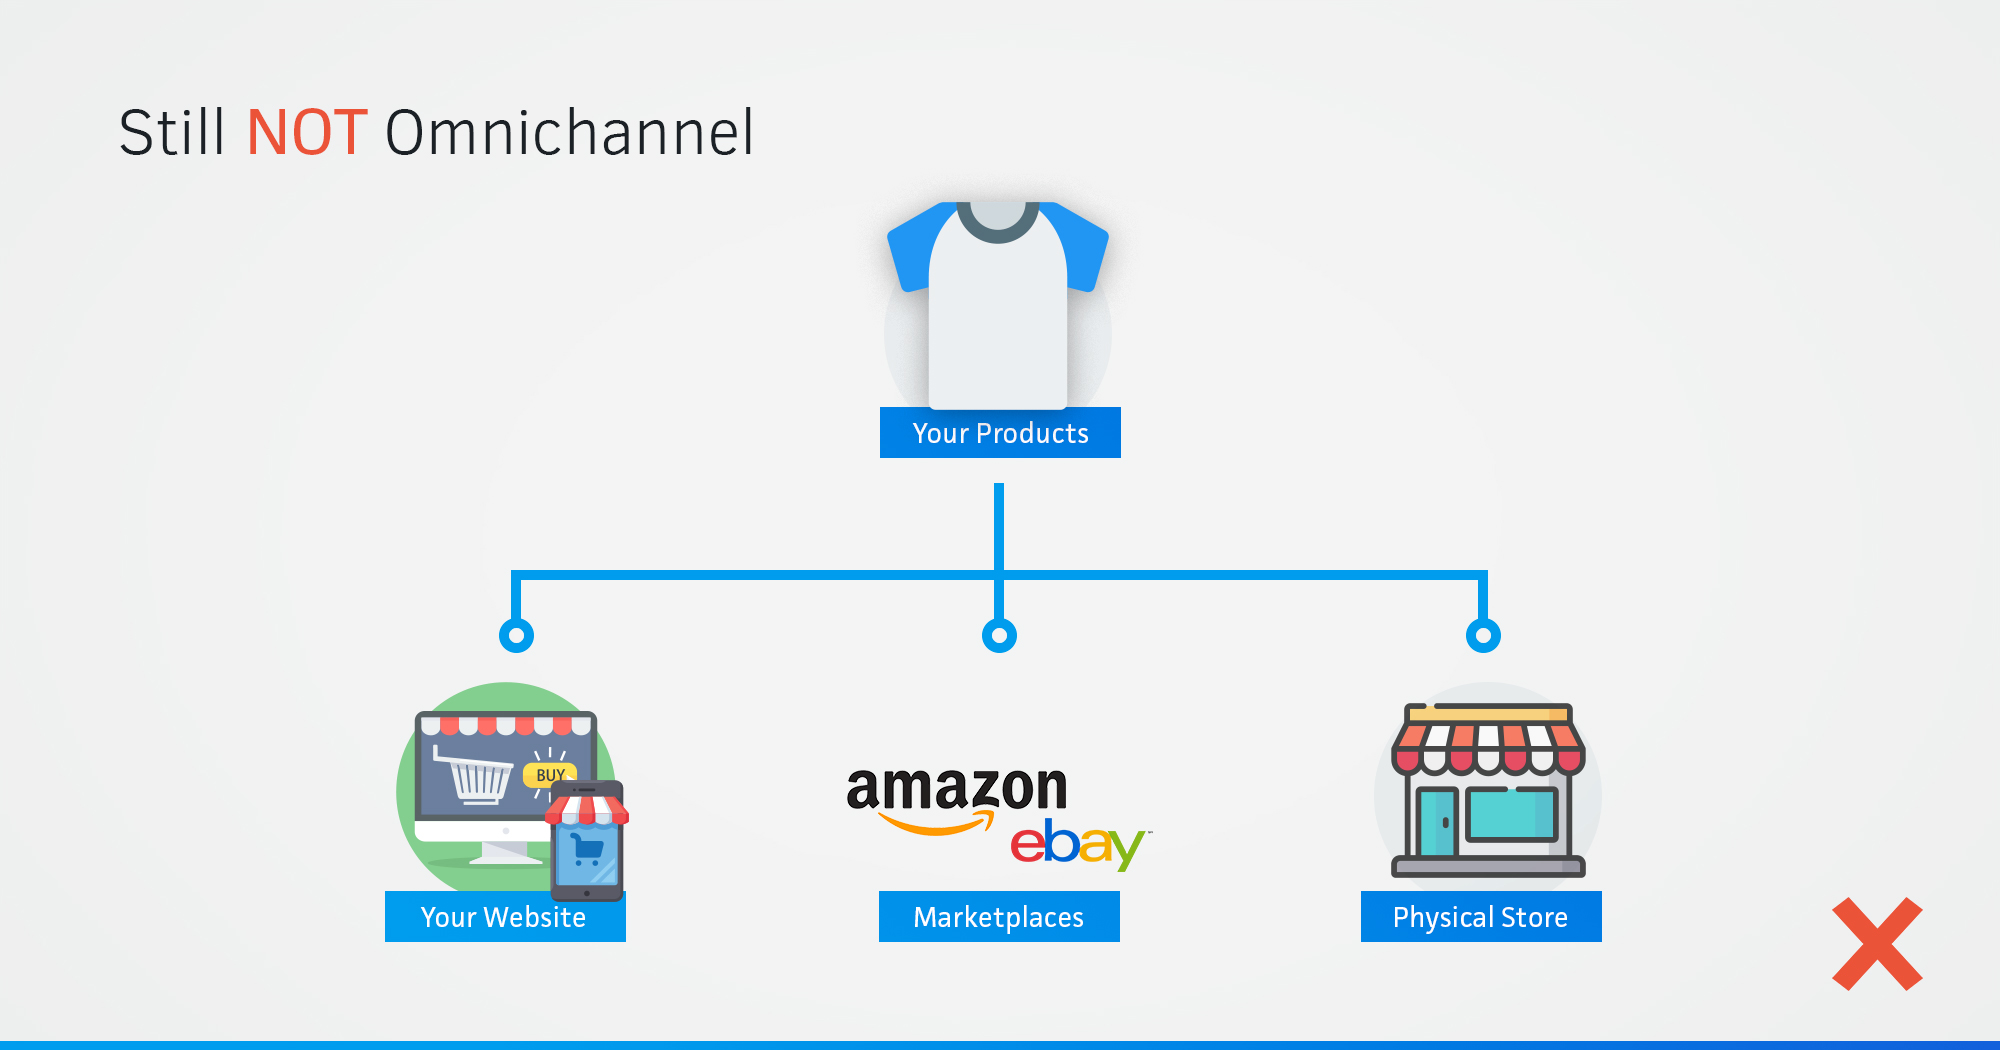 Multichannel vs Omnichannel Multichannel diagram showing online resources and a physical store